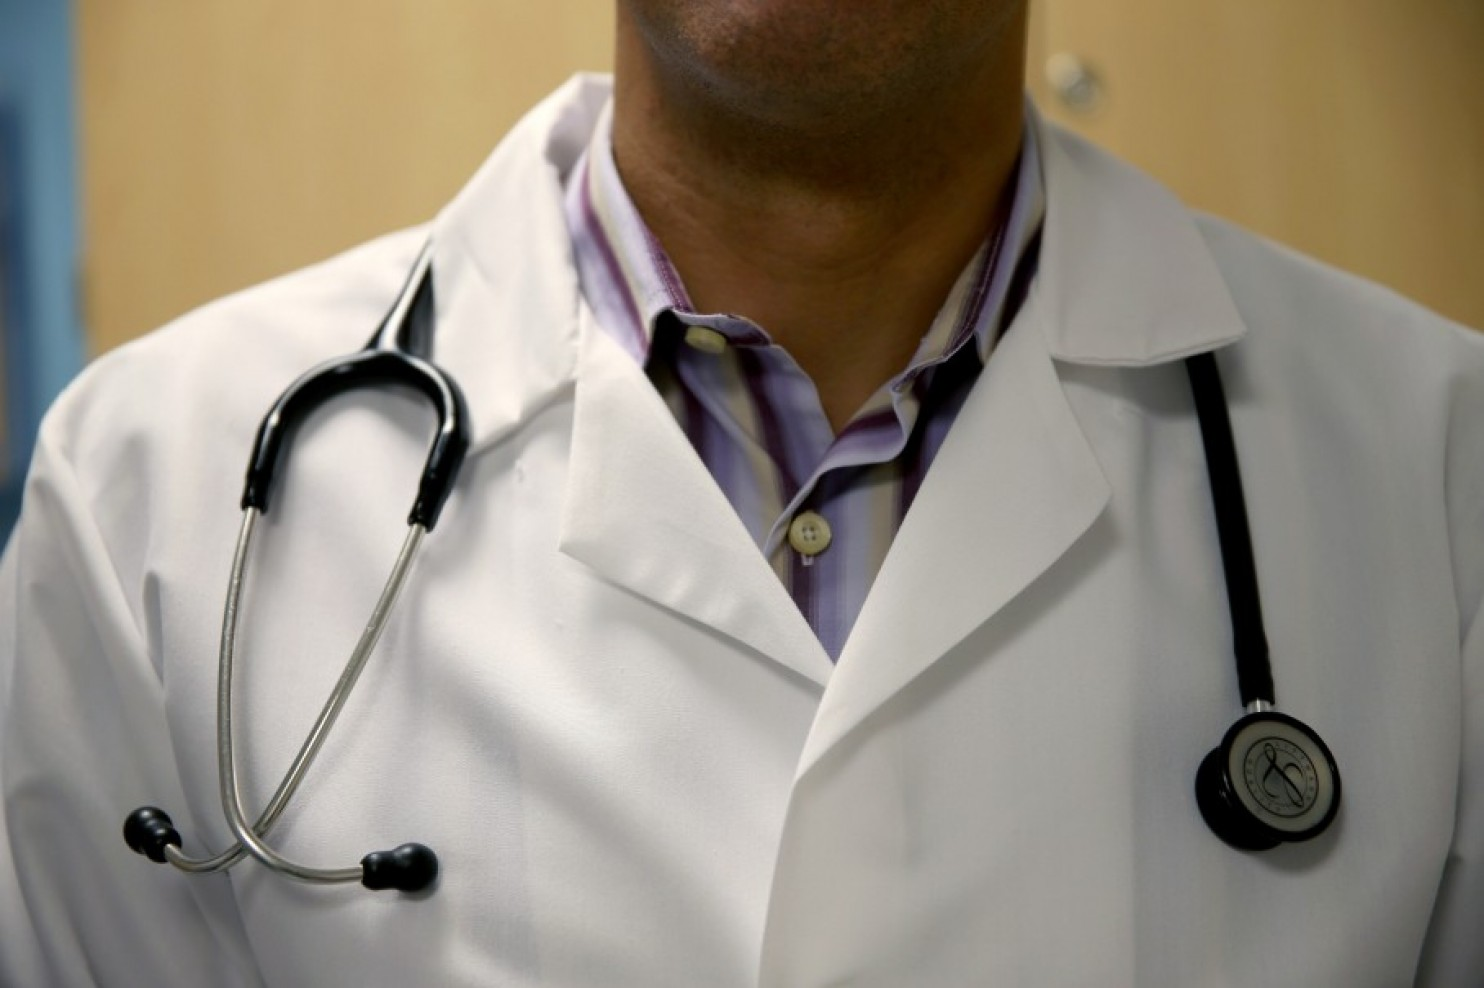 Why doctors should study human rights